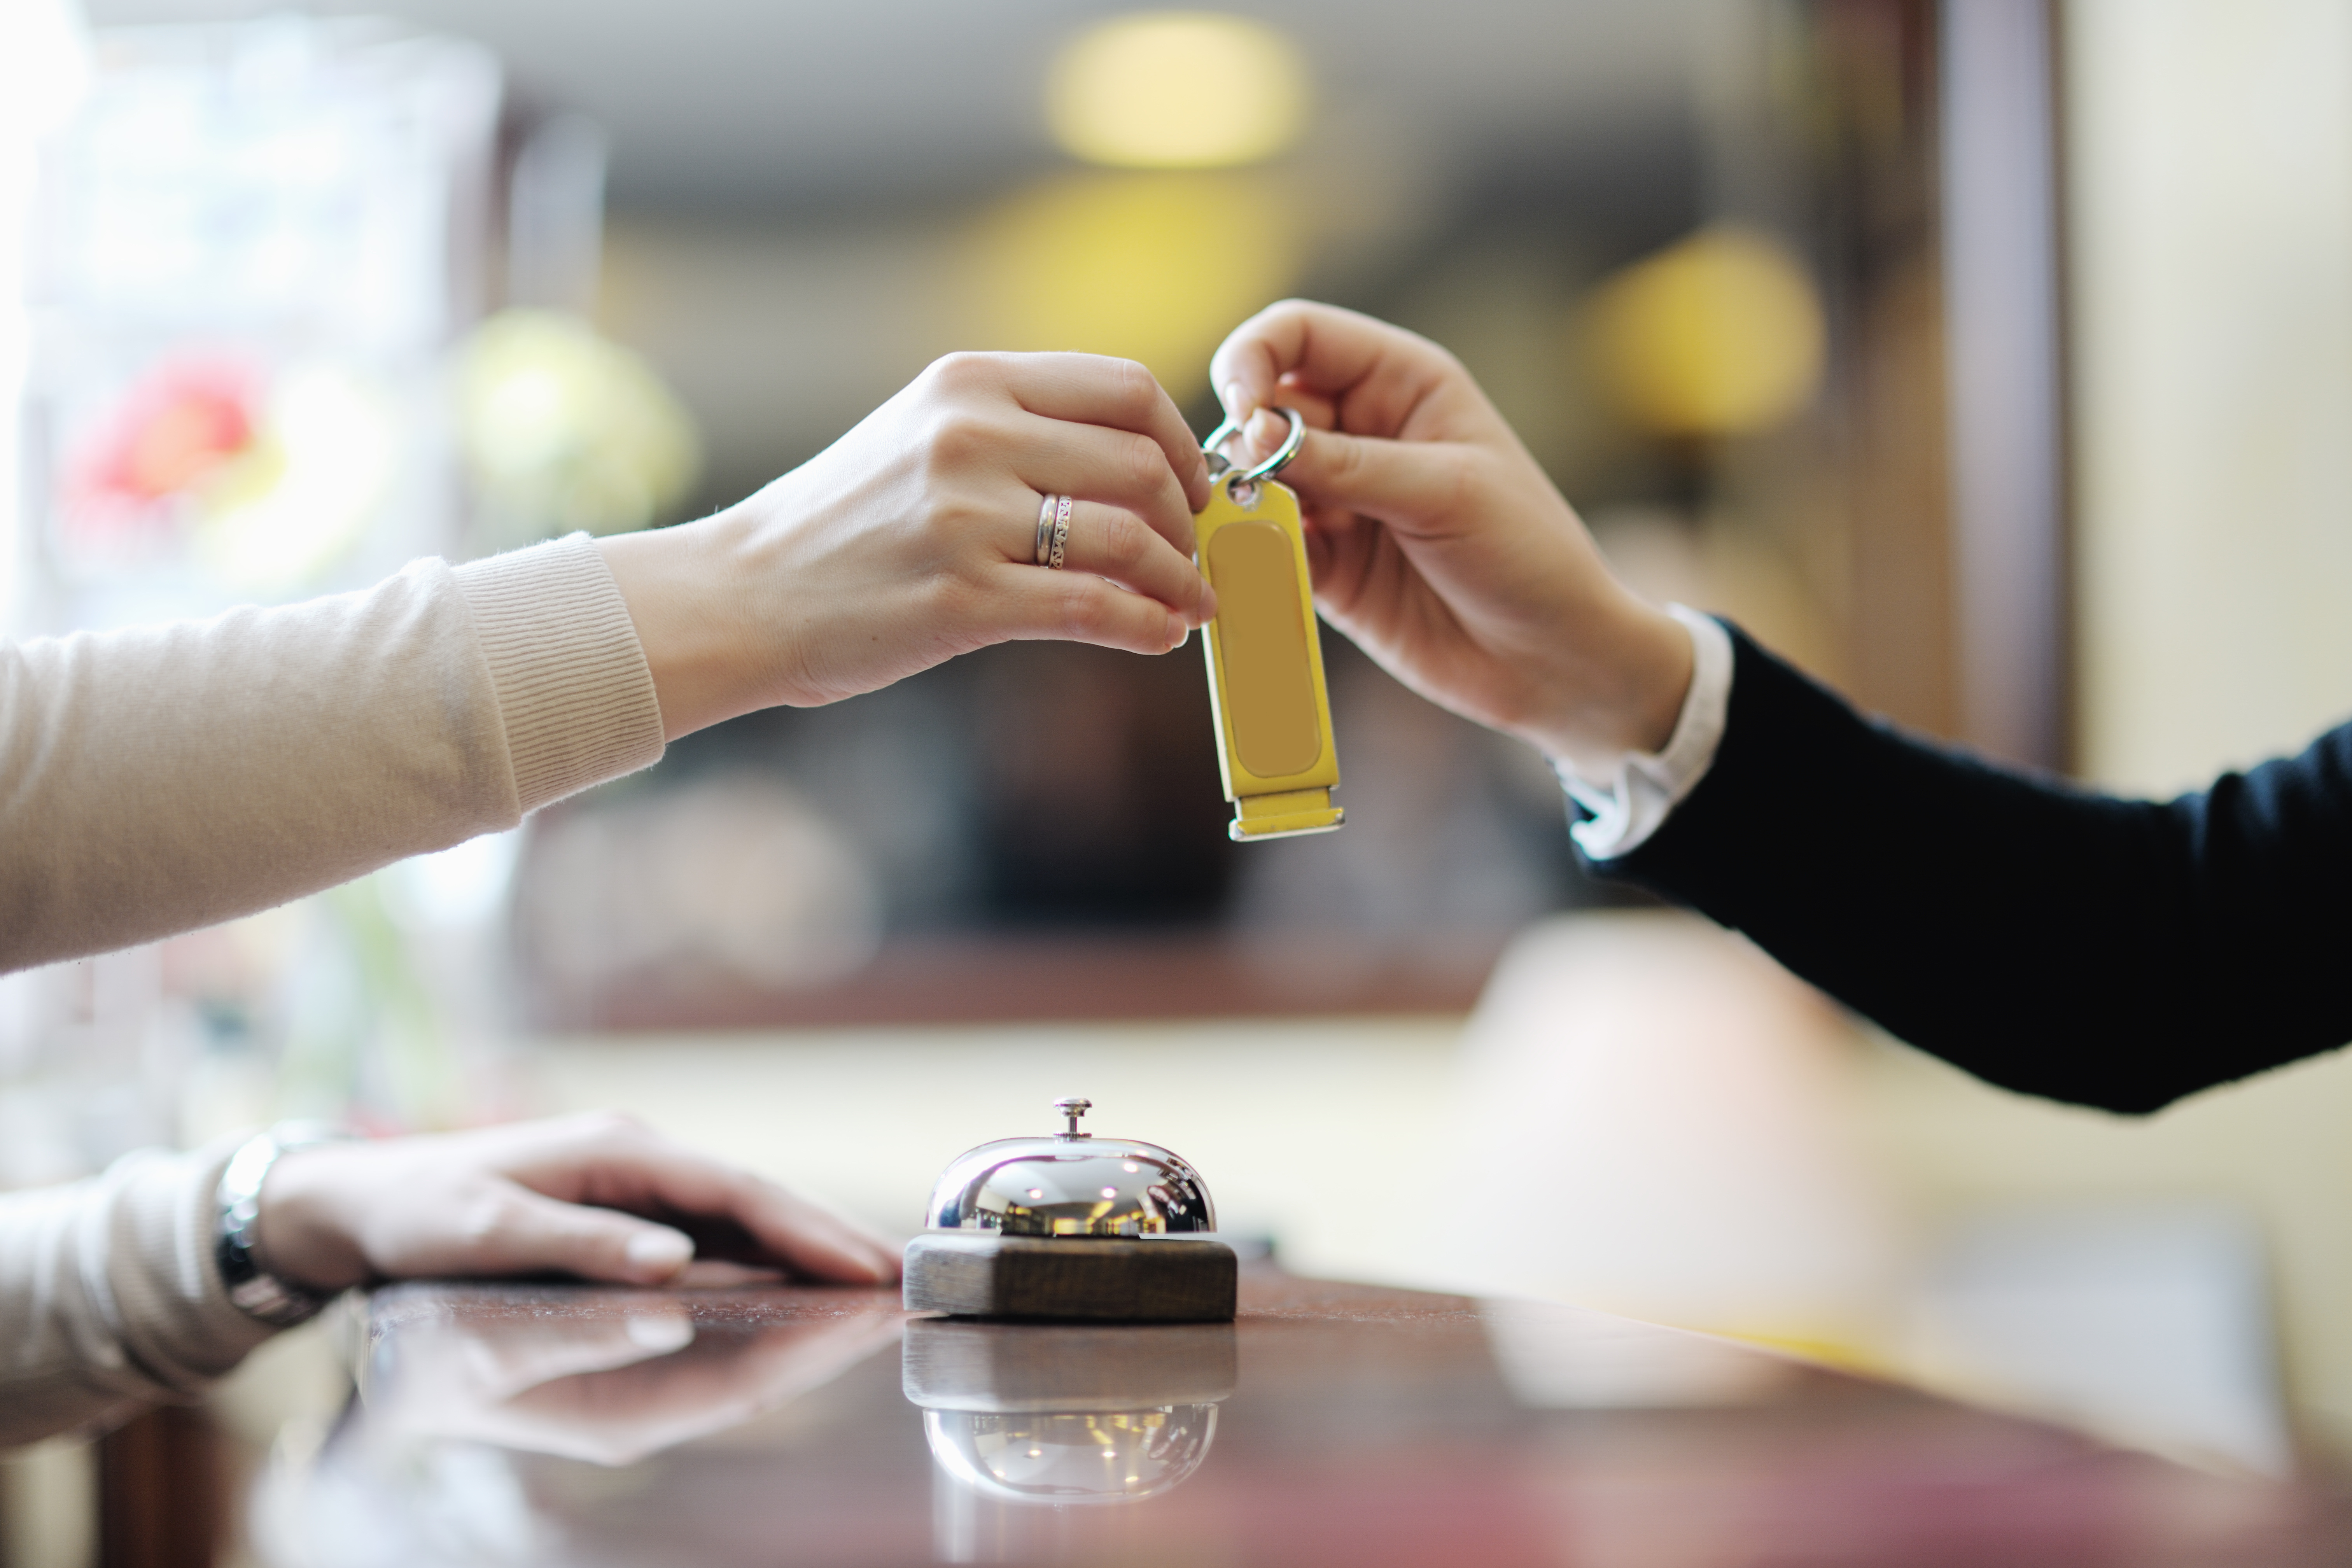 We work with hospitality establishments to get the newest technology to better their customer experience